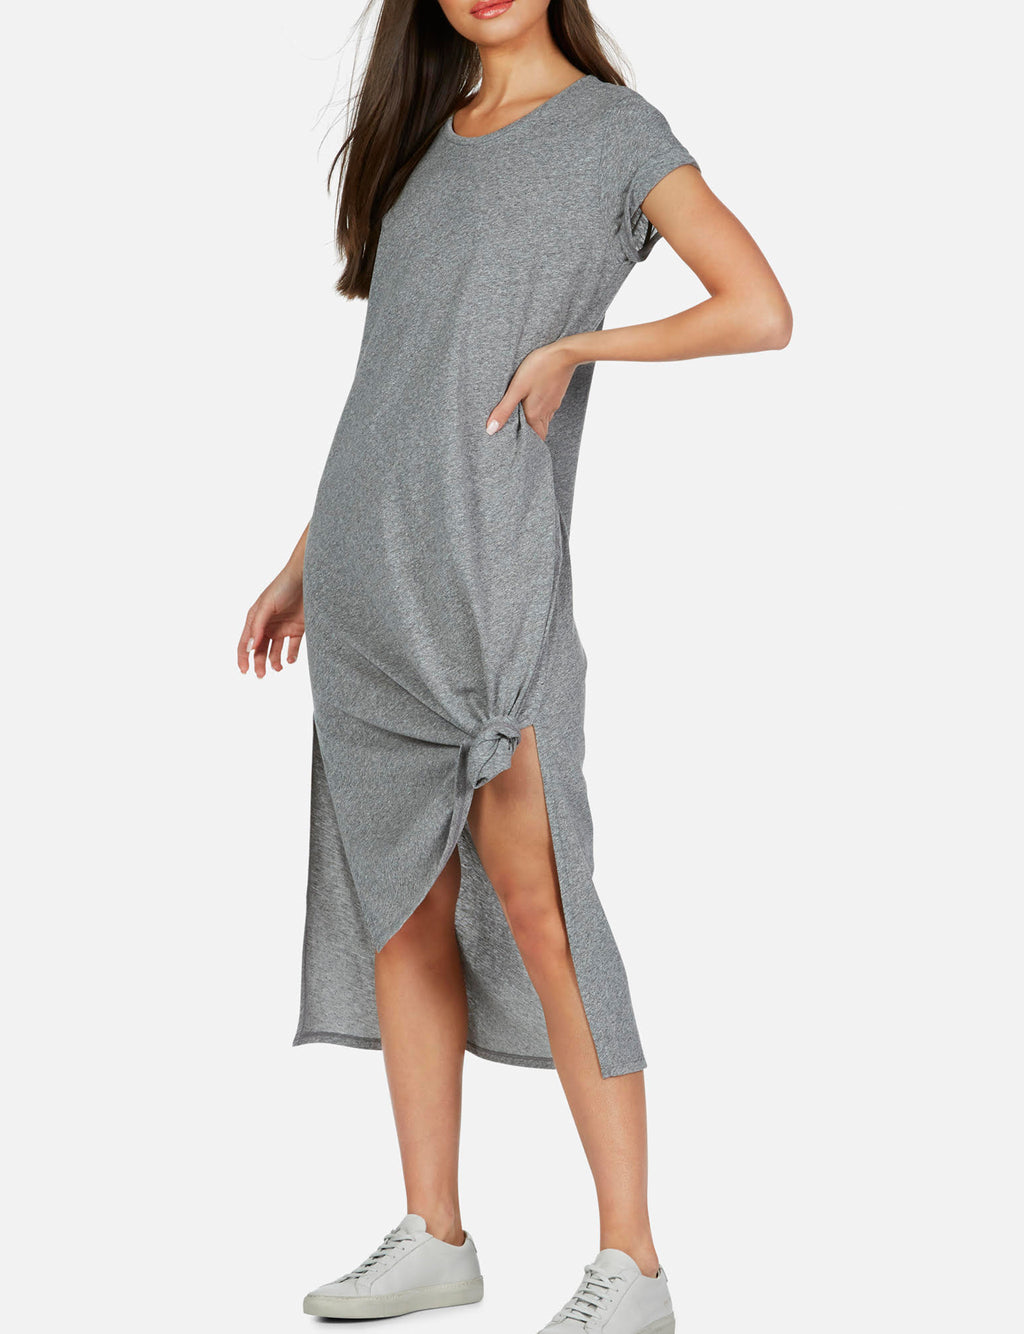 Augustus T Shirt Midi Dress in Heather Grey